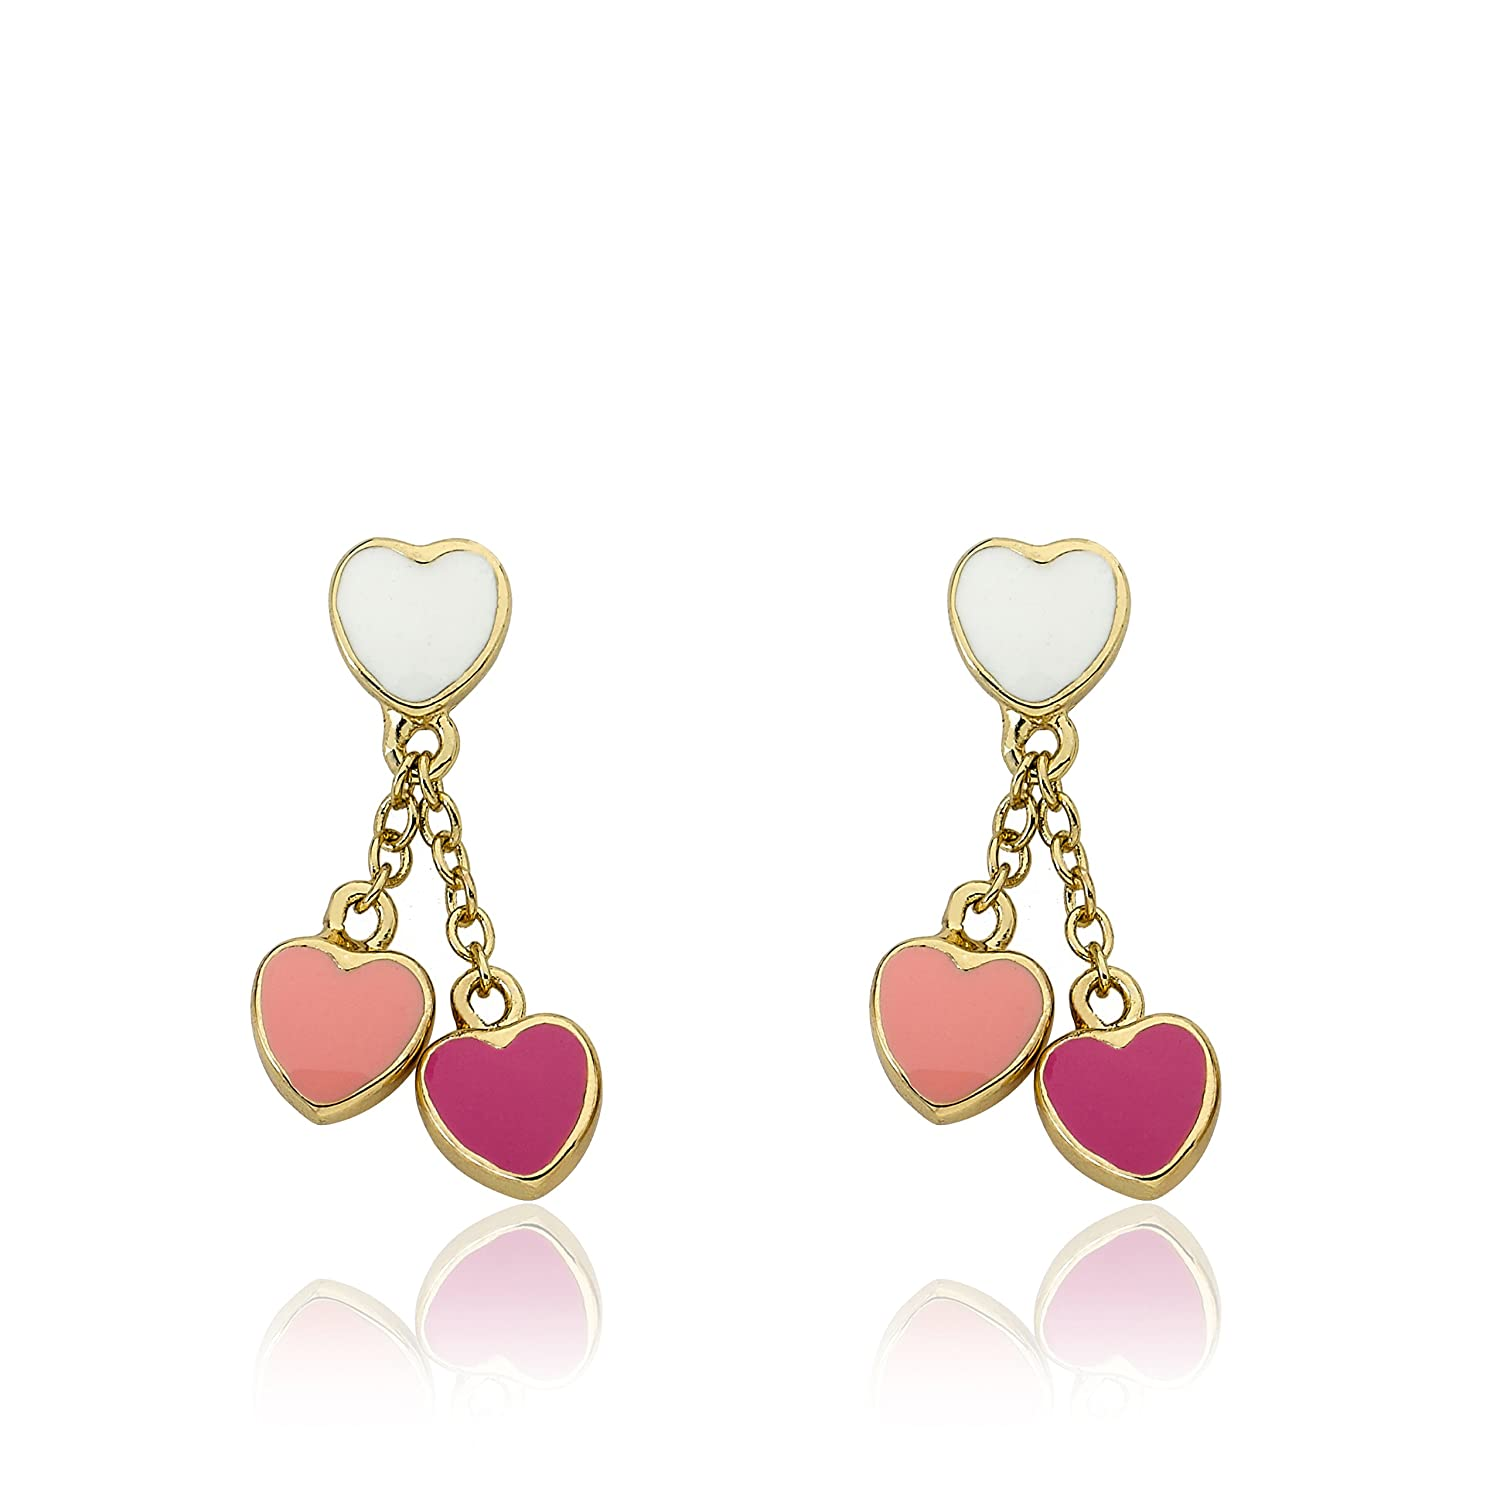 Little Miss Twin StarsI LOVE My Jewels 14k Gold-Plated White Enamel Heart with Pink and Hot Pink Heart Dangle Earring ER3686B-GP